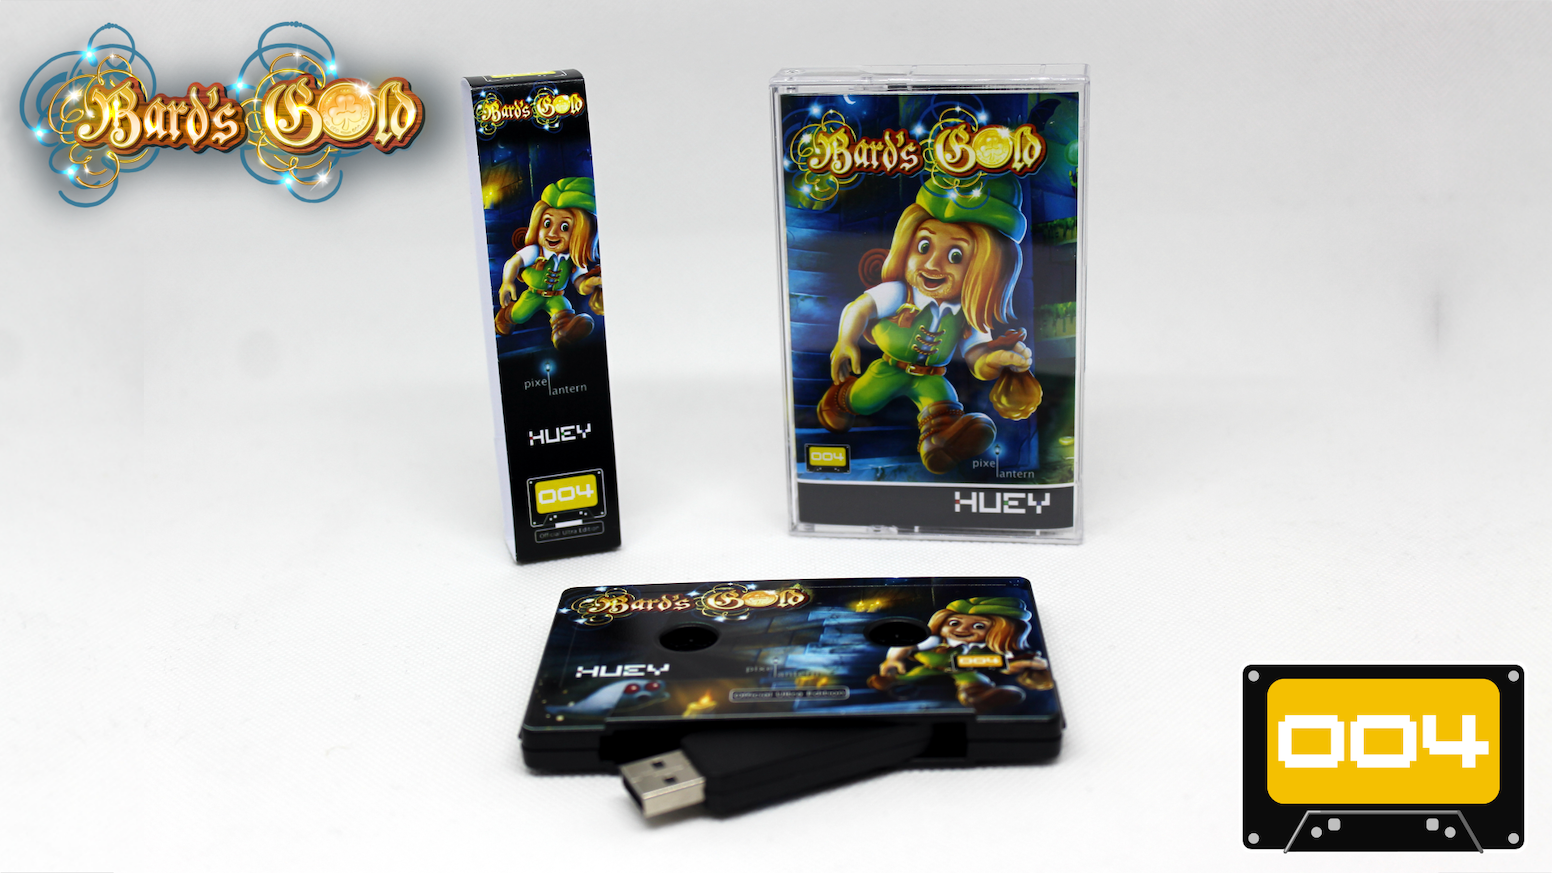 Make 100 - Collectors USB Cassettes featuring Bard's Gold (DRM-free) for Windows & Mac plus bonus features.